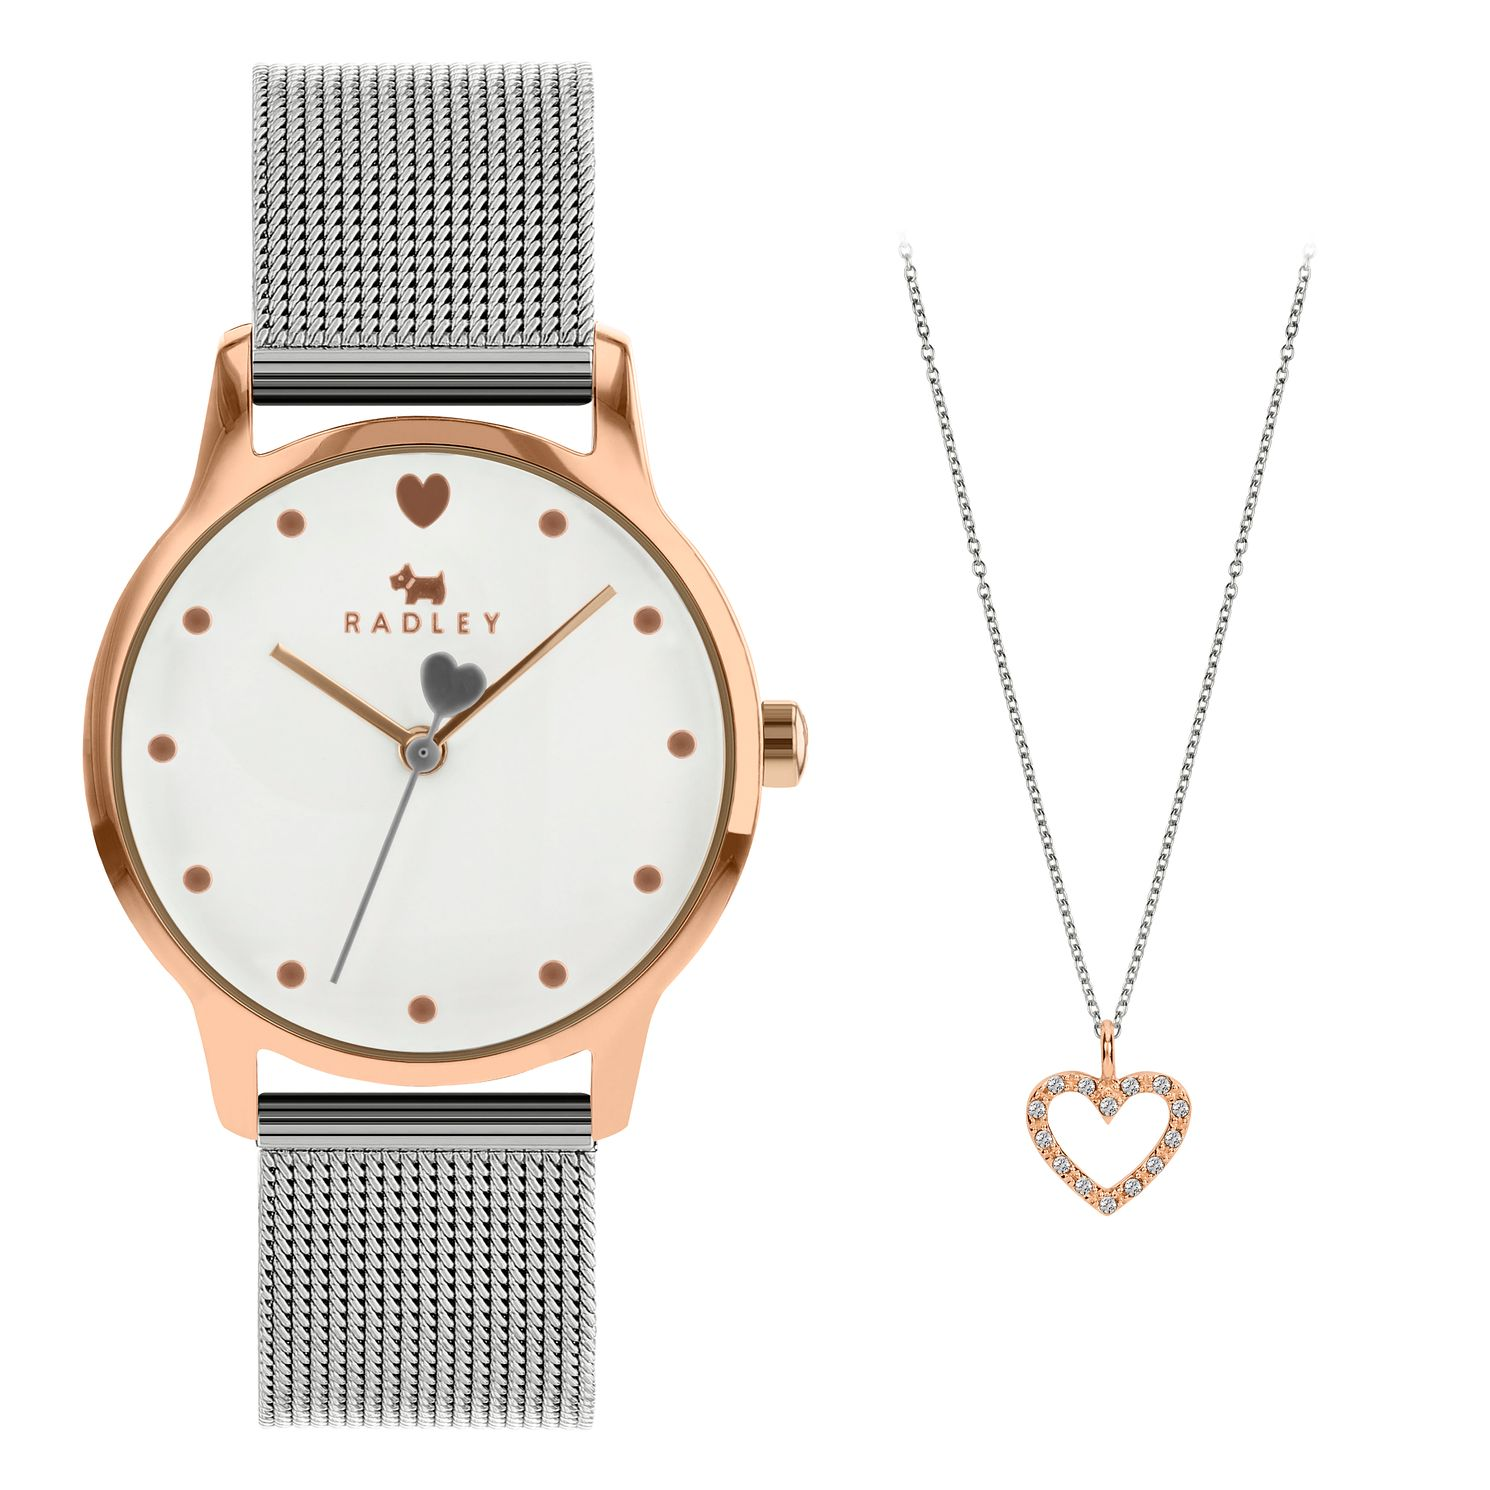 Radley London Heart Bracelet Watch & Necklace Gift Set - Product number 5087074